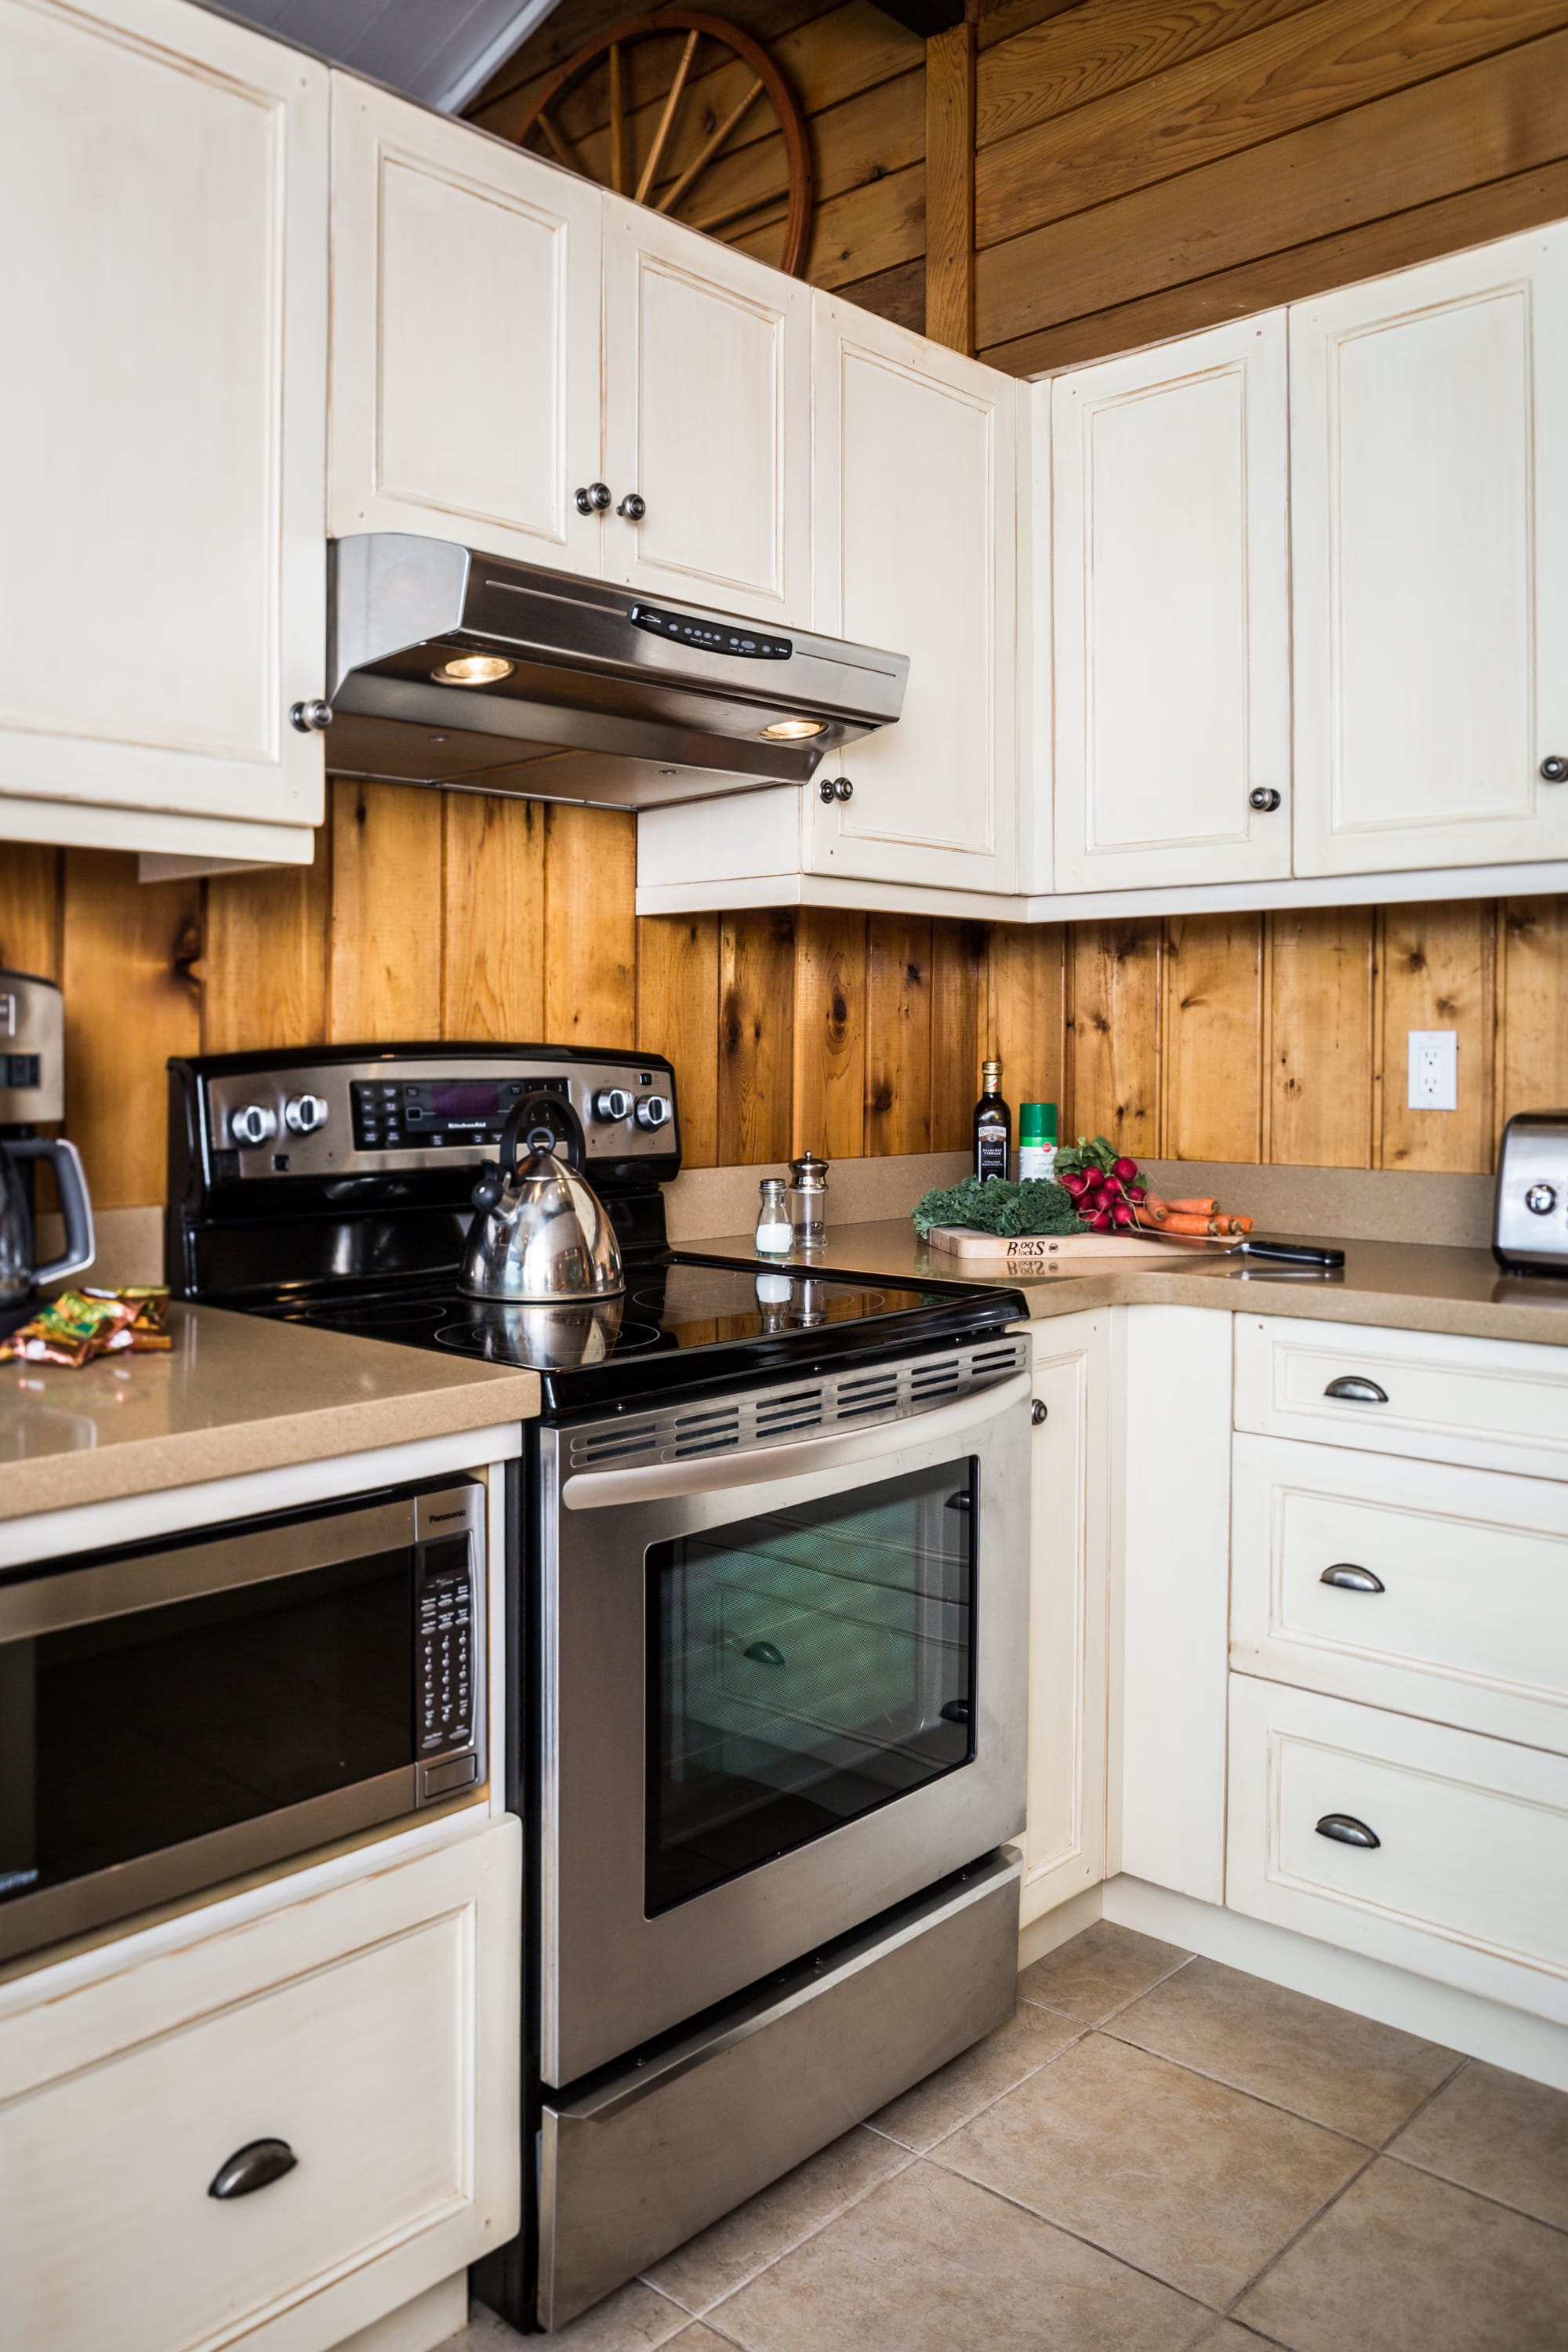 Evergreen-Kitchen newly renovated with custom cabinetry, microwave, & stove.